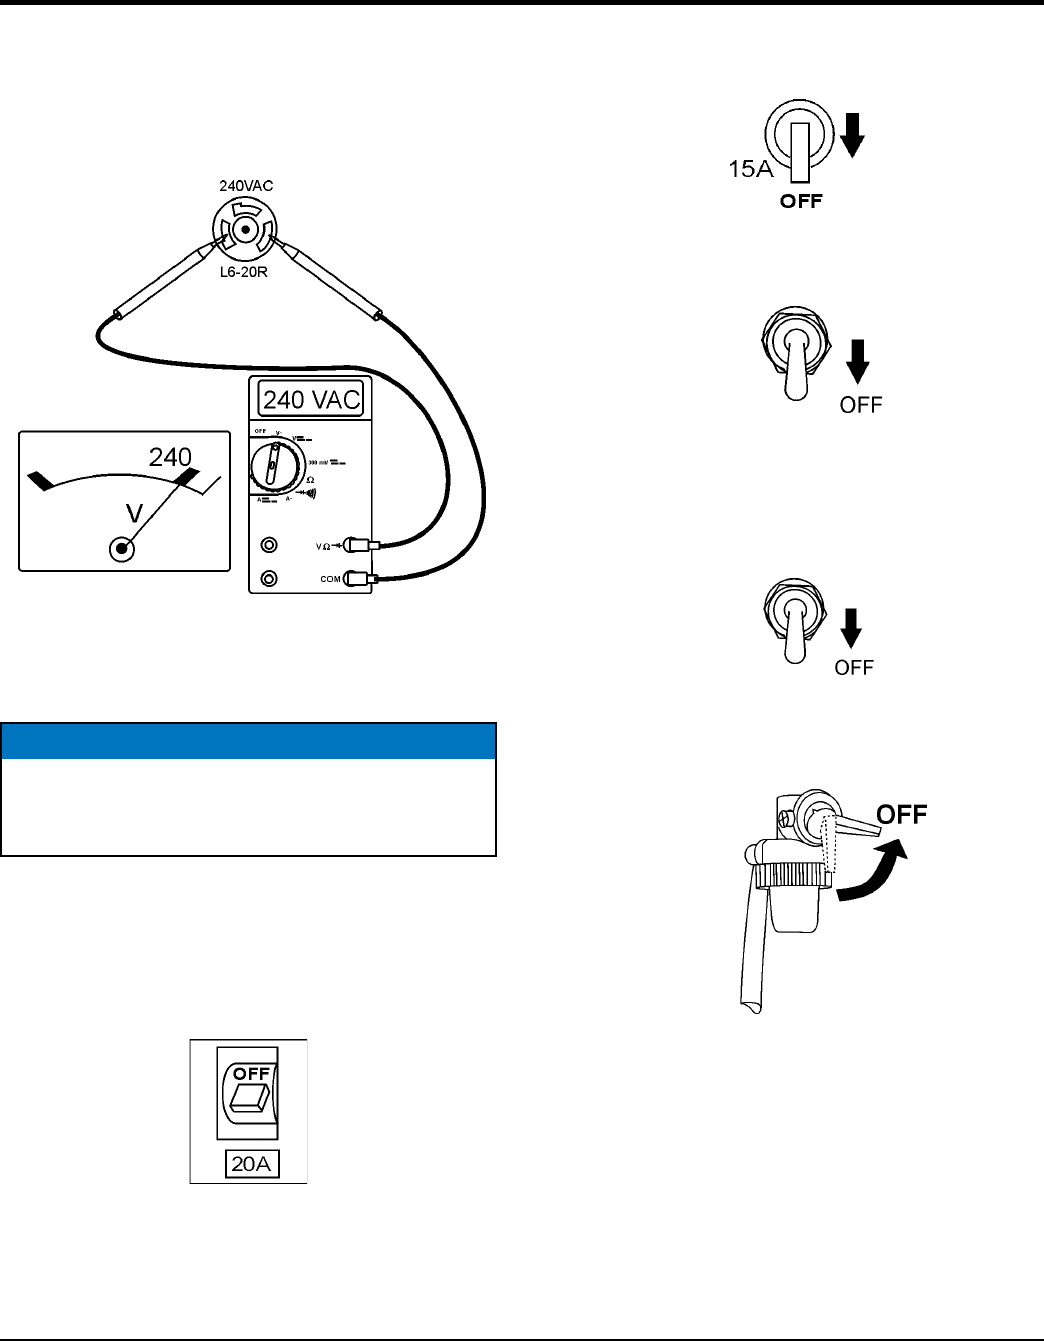 3 prong plug wiring diagram 110 wiring diagram database Wiring a Receptacle Outlet 4 prong outlet diagram wiring diagram database three prong electrical wiring 3 prong plug wiring diagram 110